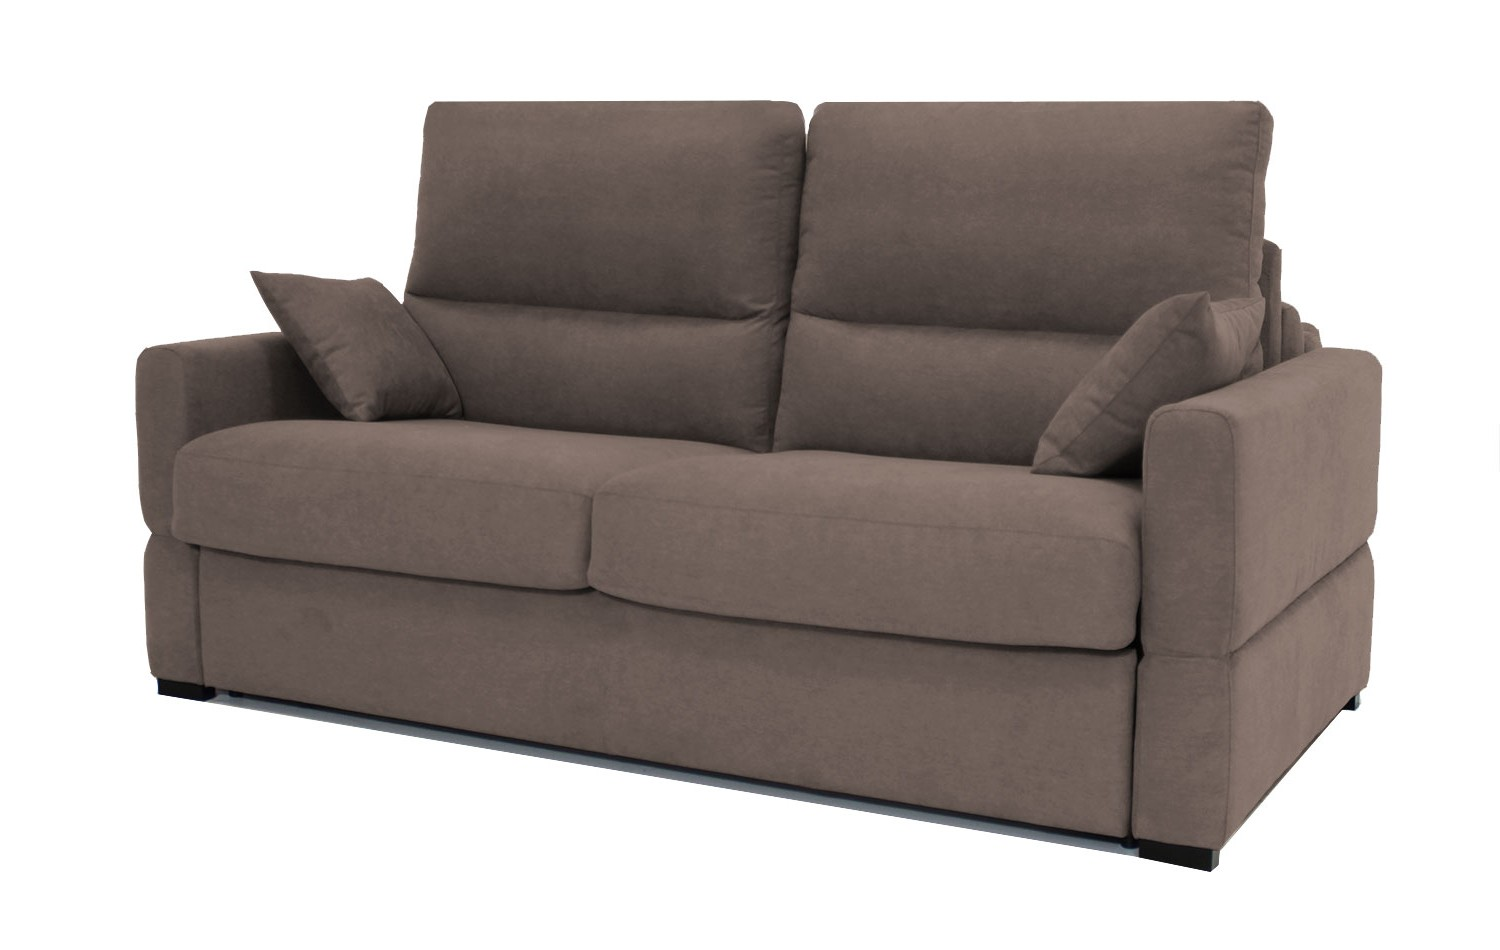 Canape Dangle Convertible Couchage 160x200